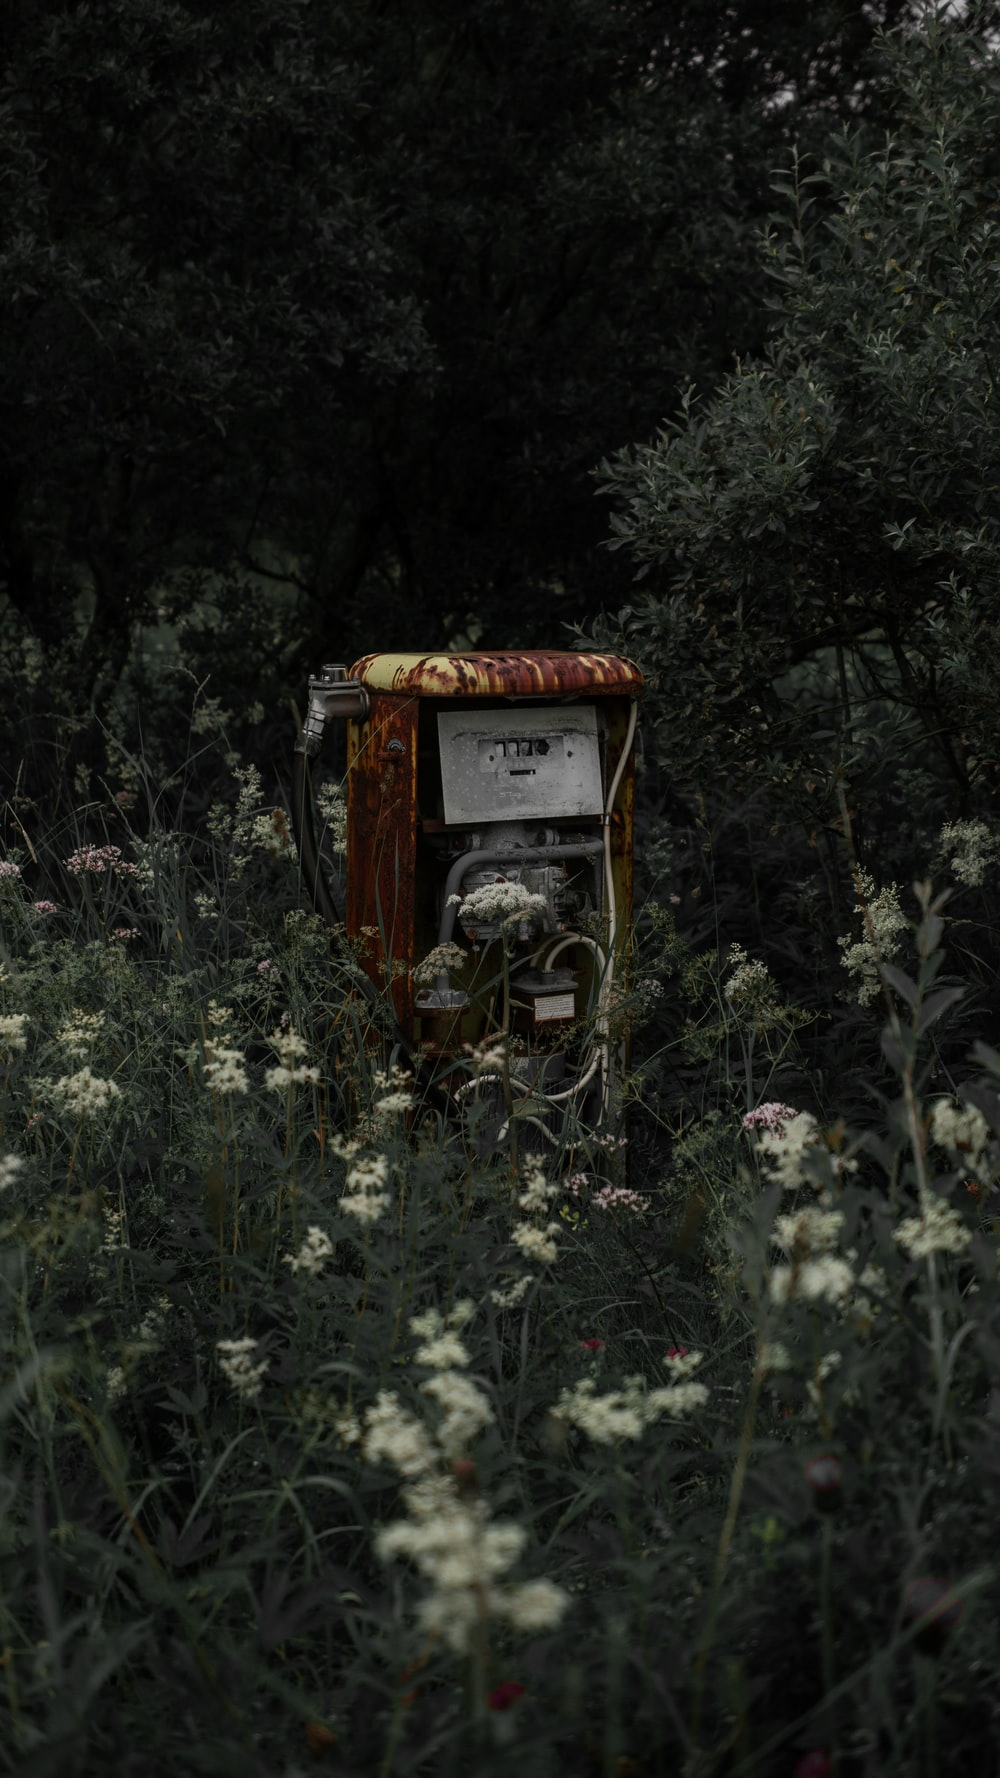 abandoned gas pump by grass field